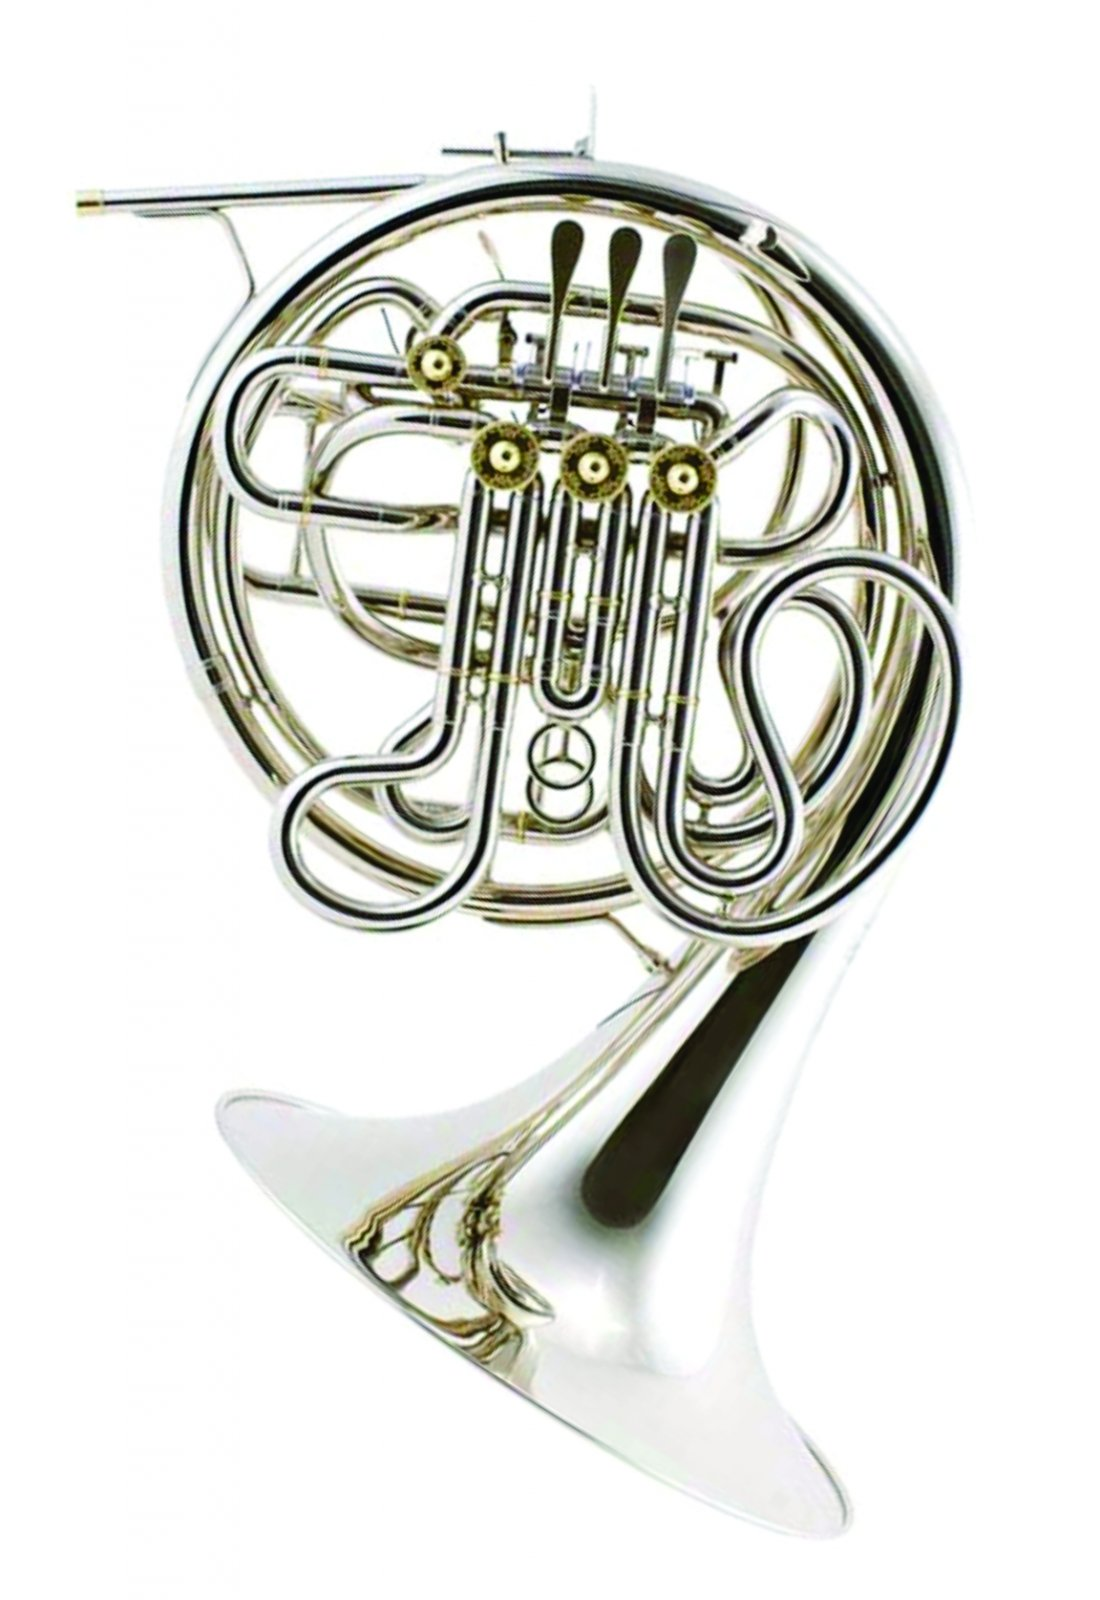 CONN V8D Professional Double French Horn